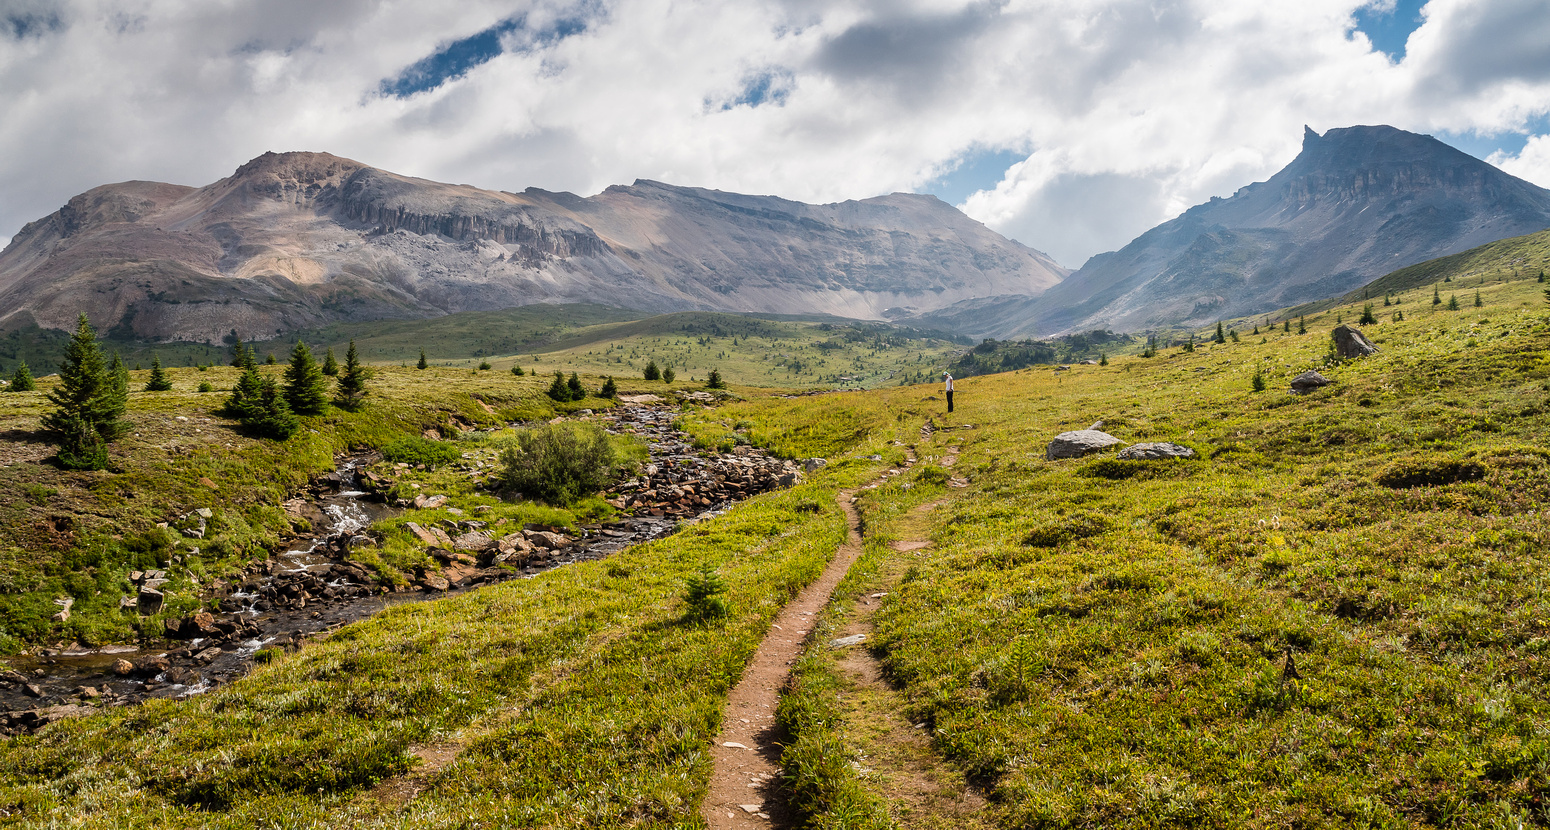 This hike will leave you satisfied pretty much no matter what the conditions - it's one of my favorite alpine meadow hikes in the Rockies.